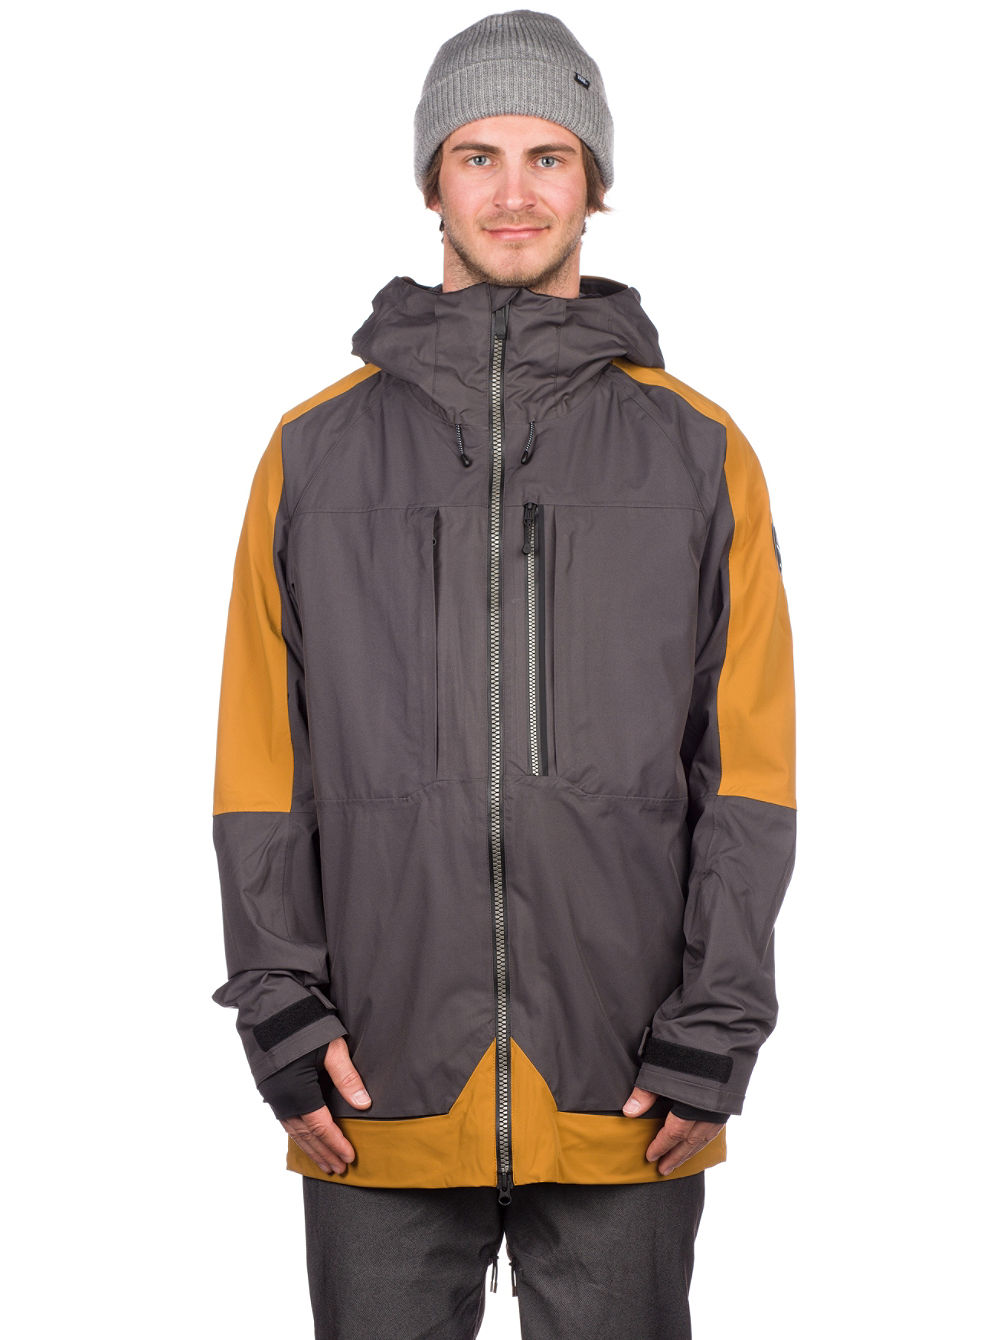 cae97188b3d Buy Quiksilver Travis Rice Stretch Jacket online at Blue Tomato